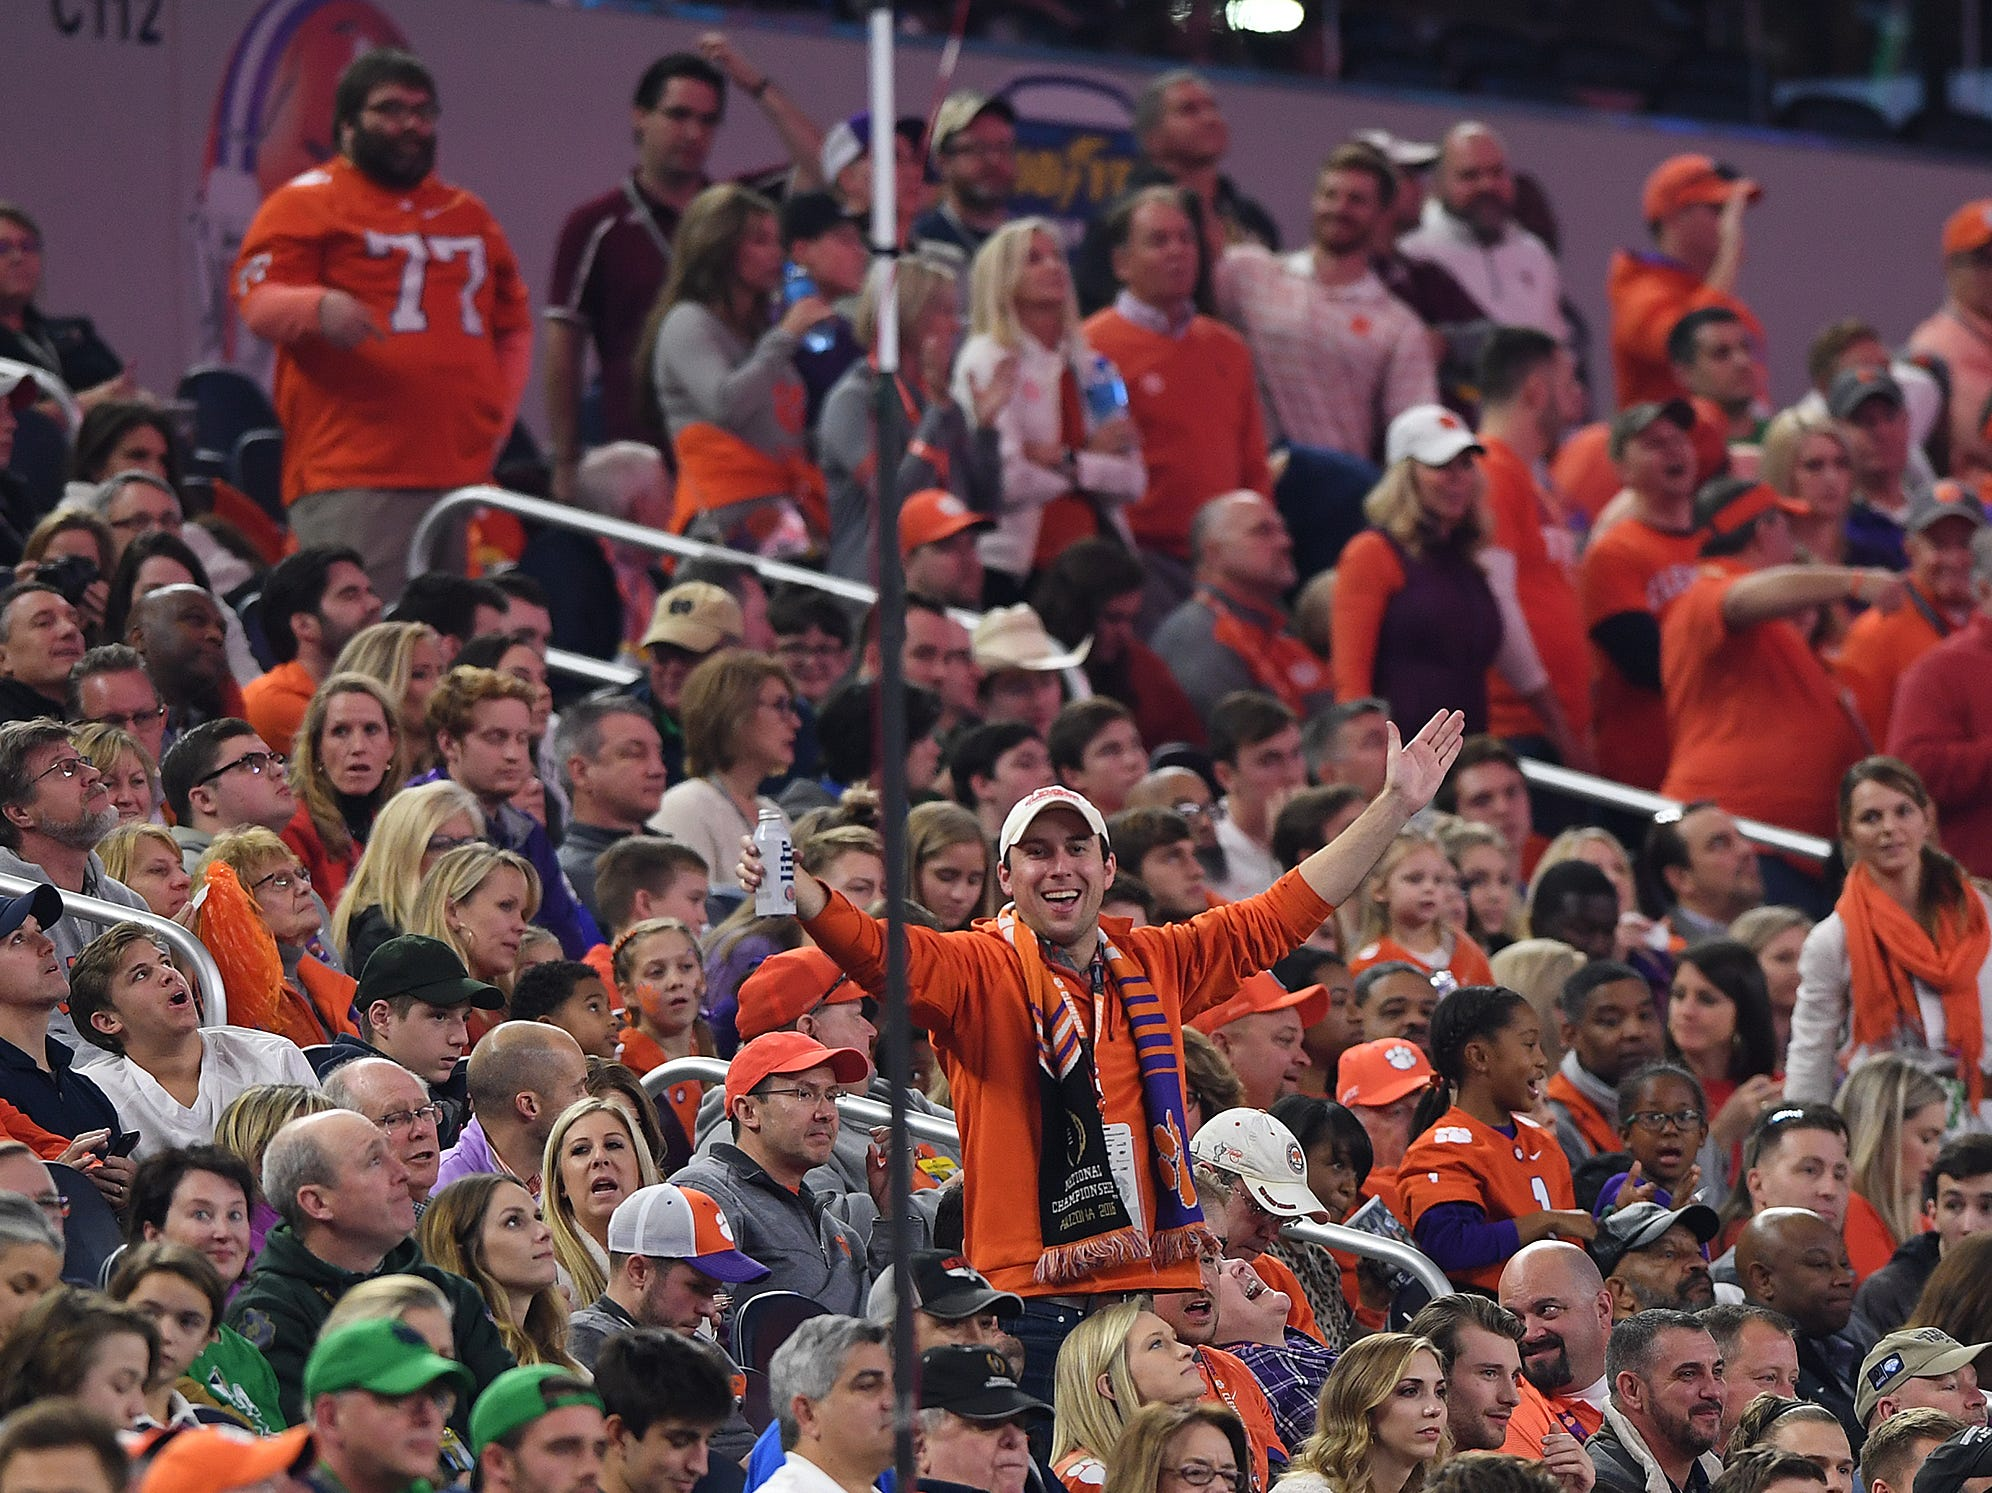 Clemson fans during the 4th quarter of the Goodyear Cotton Bowl at AT&T stadium in Arlington, TX Saturday, December 29, 2018.